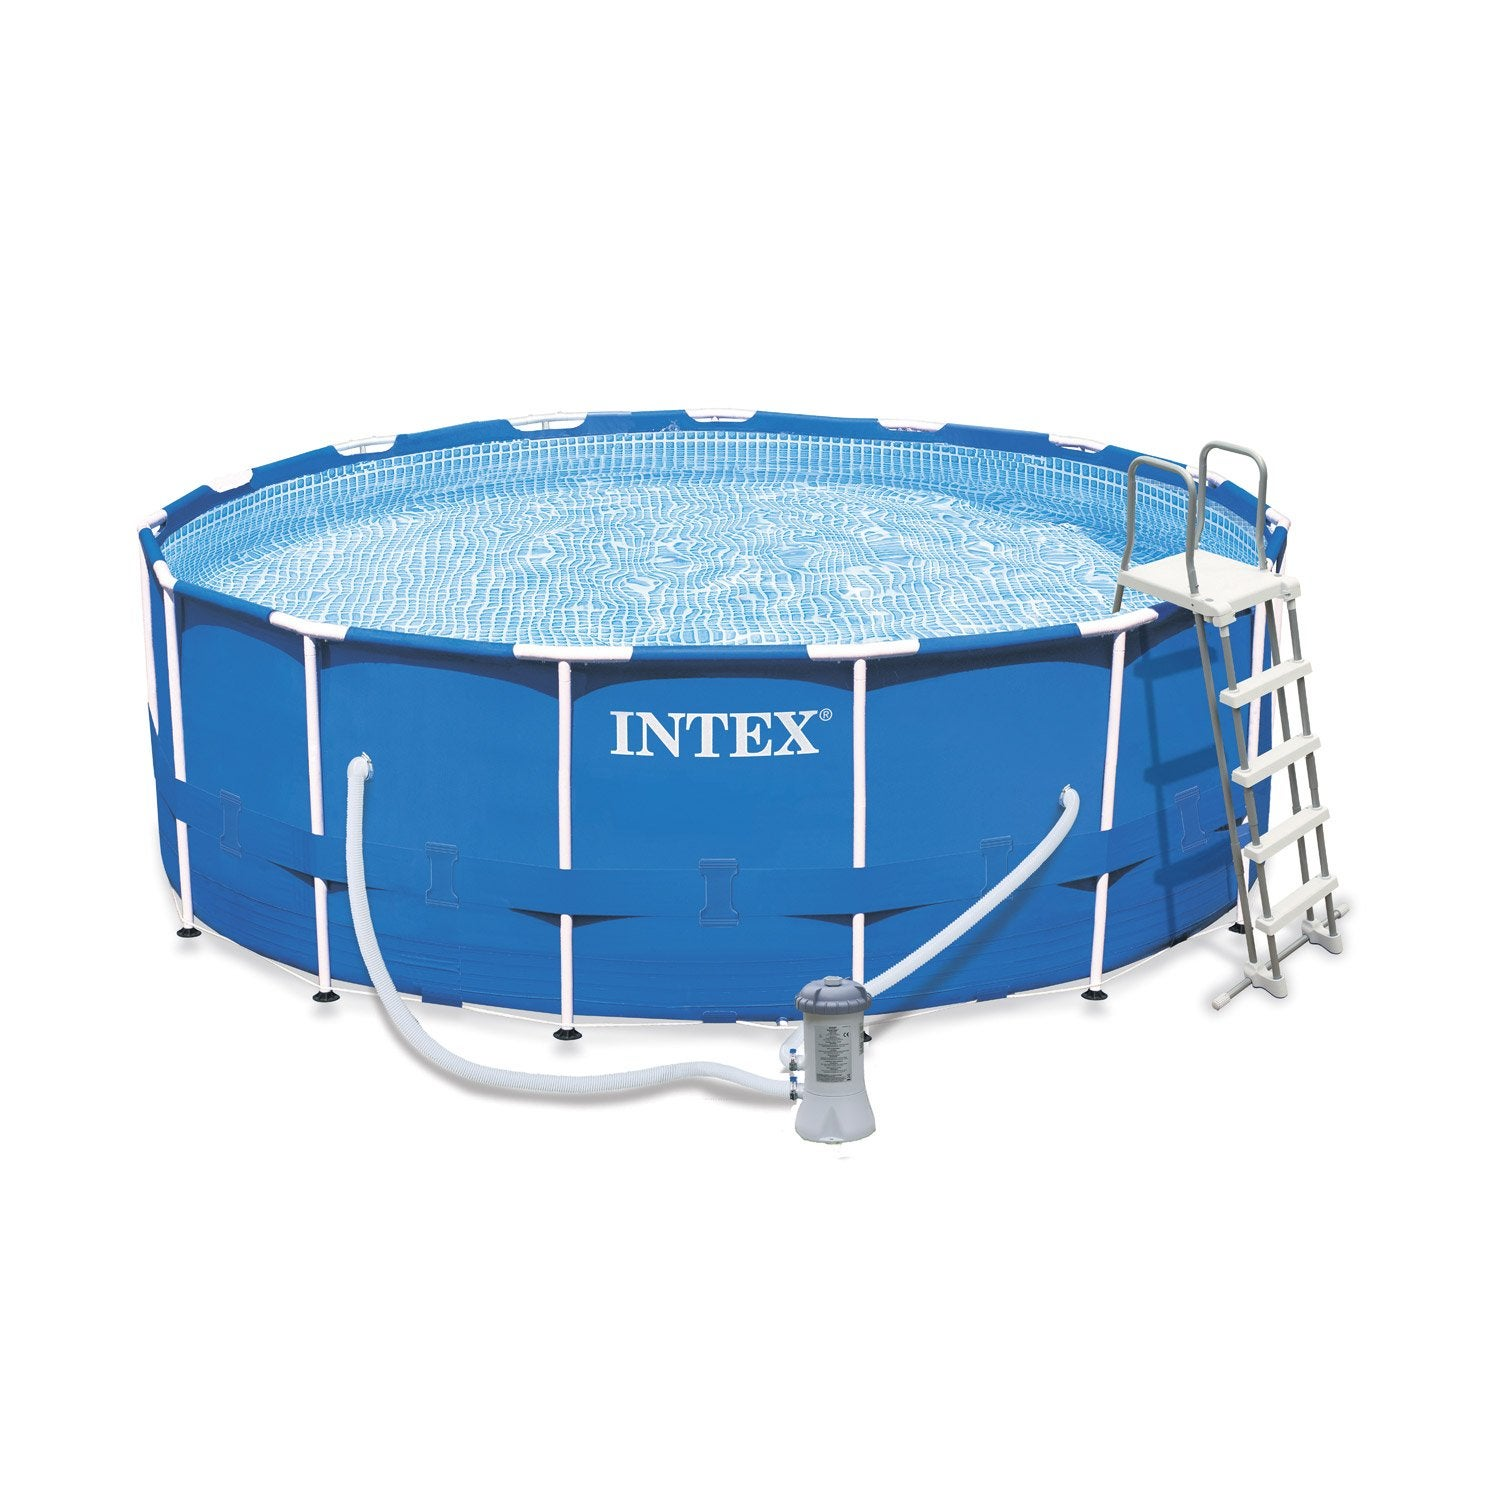 Piscine hors sol autoportante tubulaire metal frame intex for Robot nettoyeur piscine hors sol